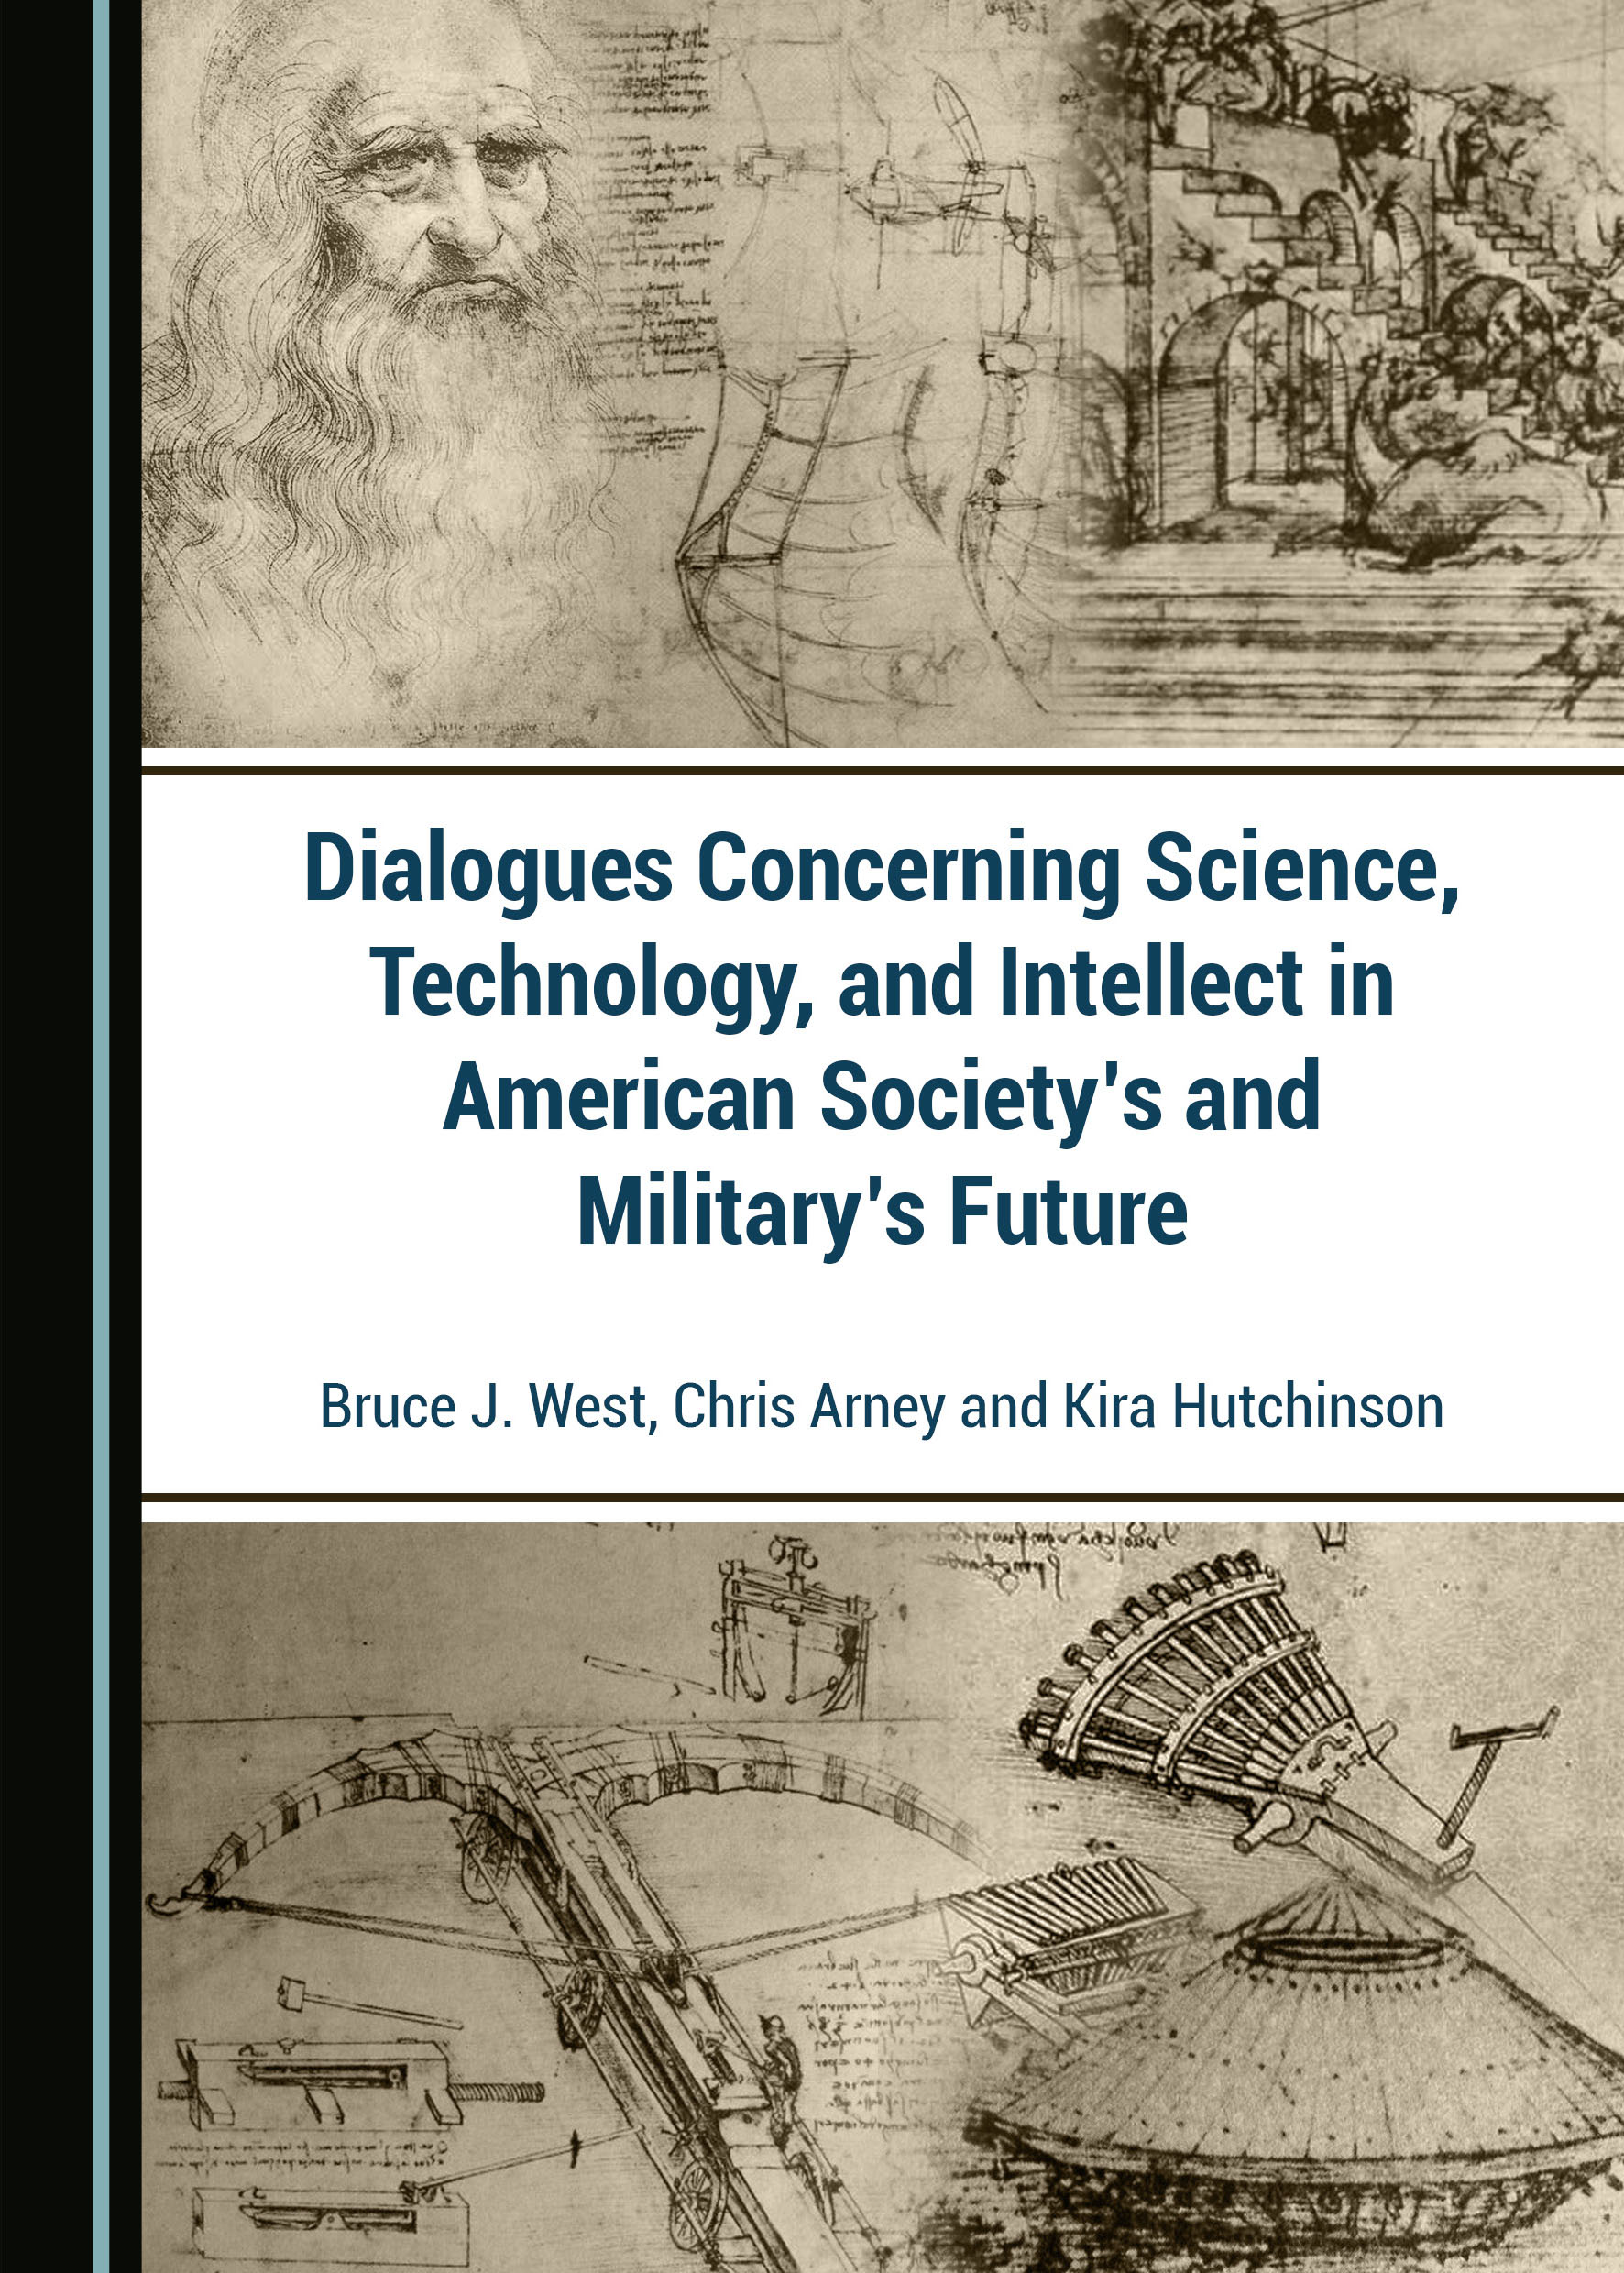 Dialogues Concerning Science, Technology, and Intellect in American Society's and Military's Future